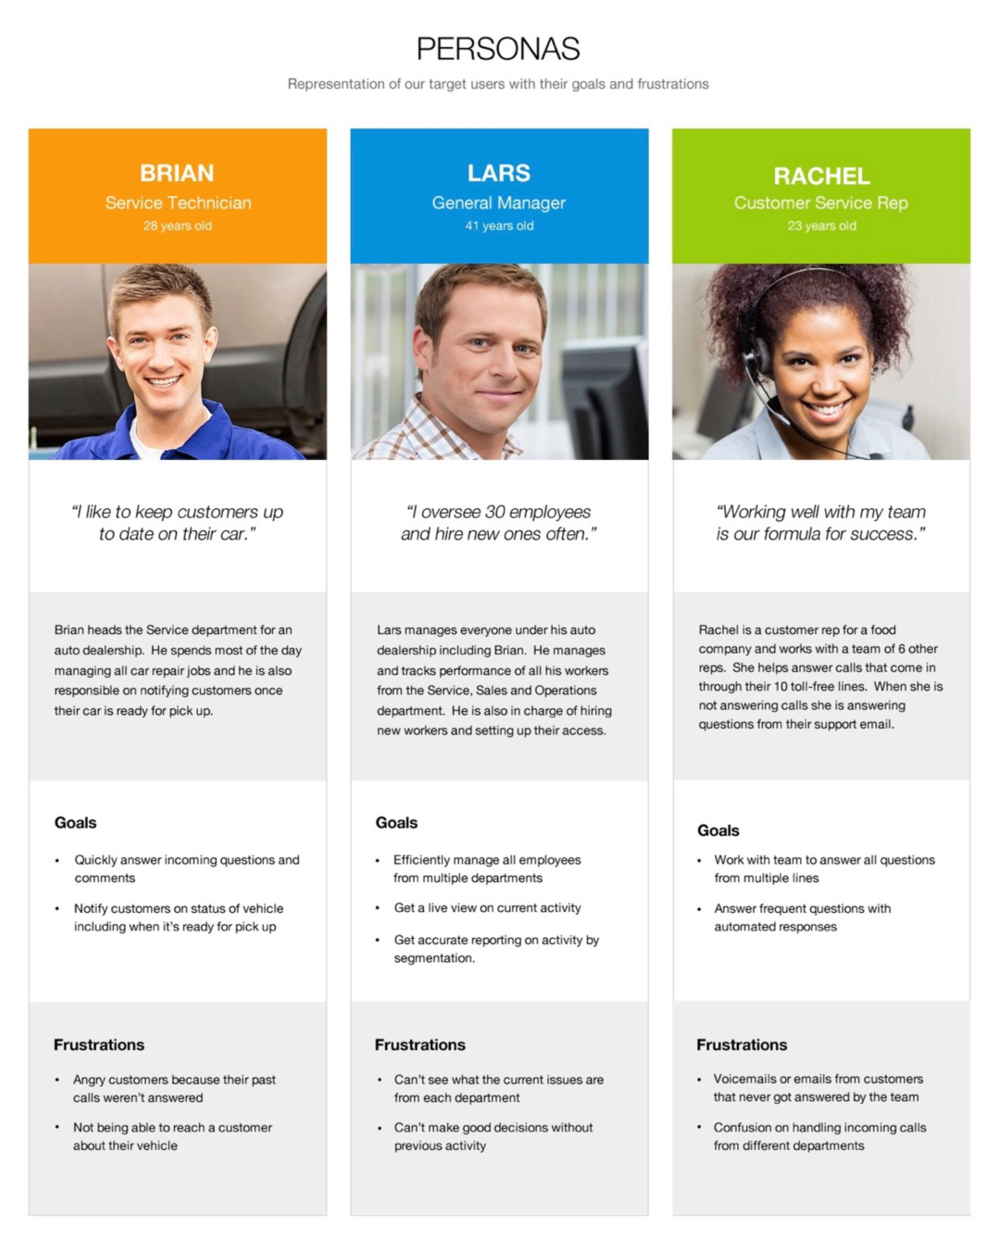 Personas developed during Discovery Phase